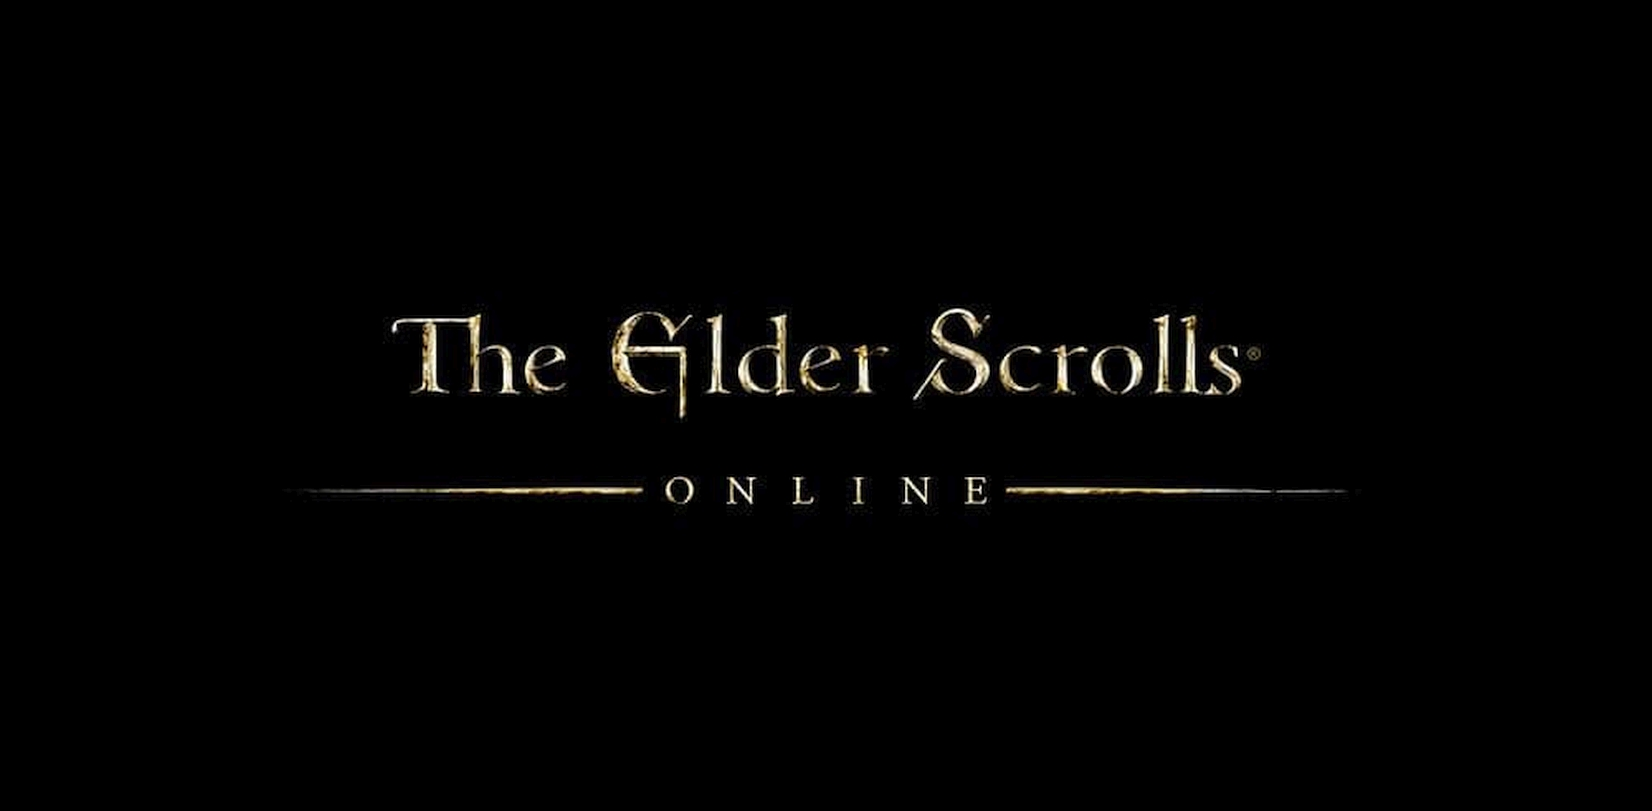 The Elder Scrolls Online Is Getting An Upgraded Version On Xbox Series X and PlayStation 5